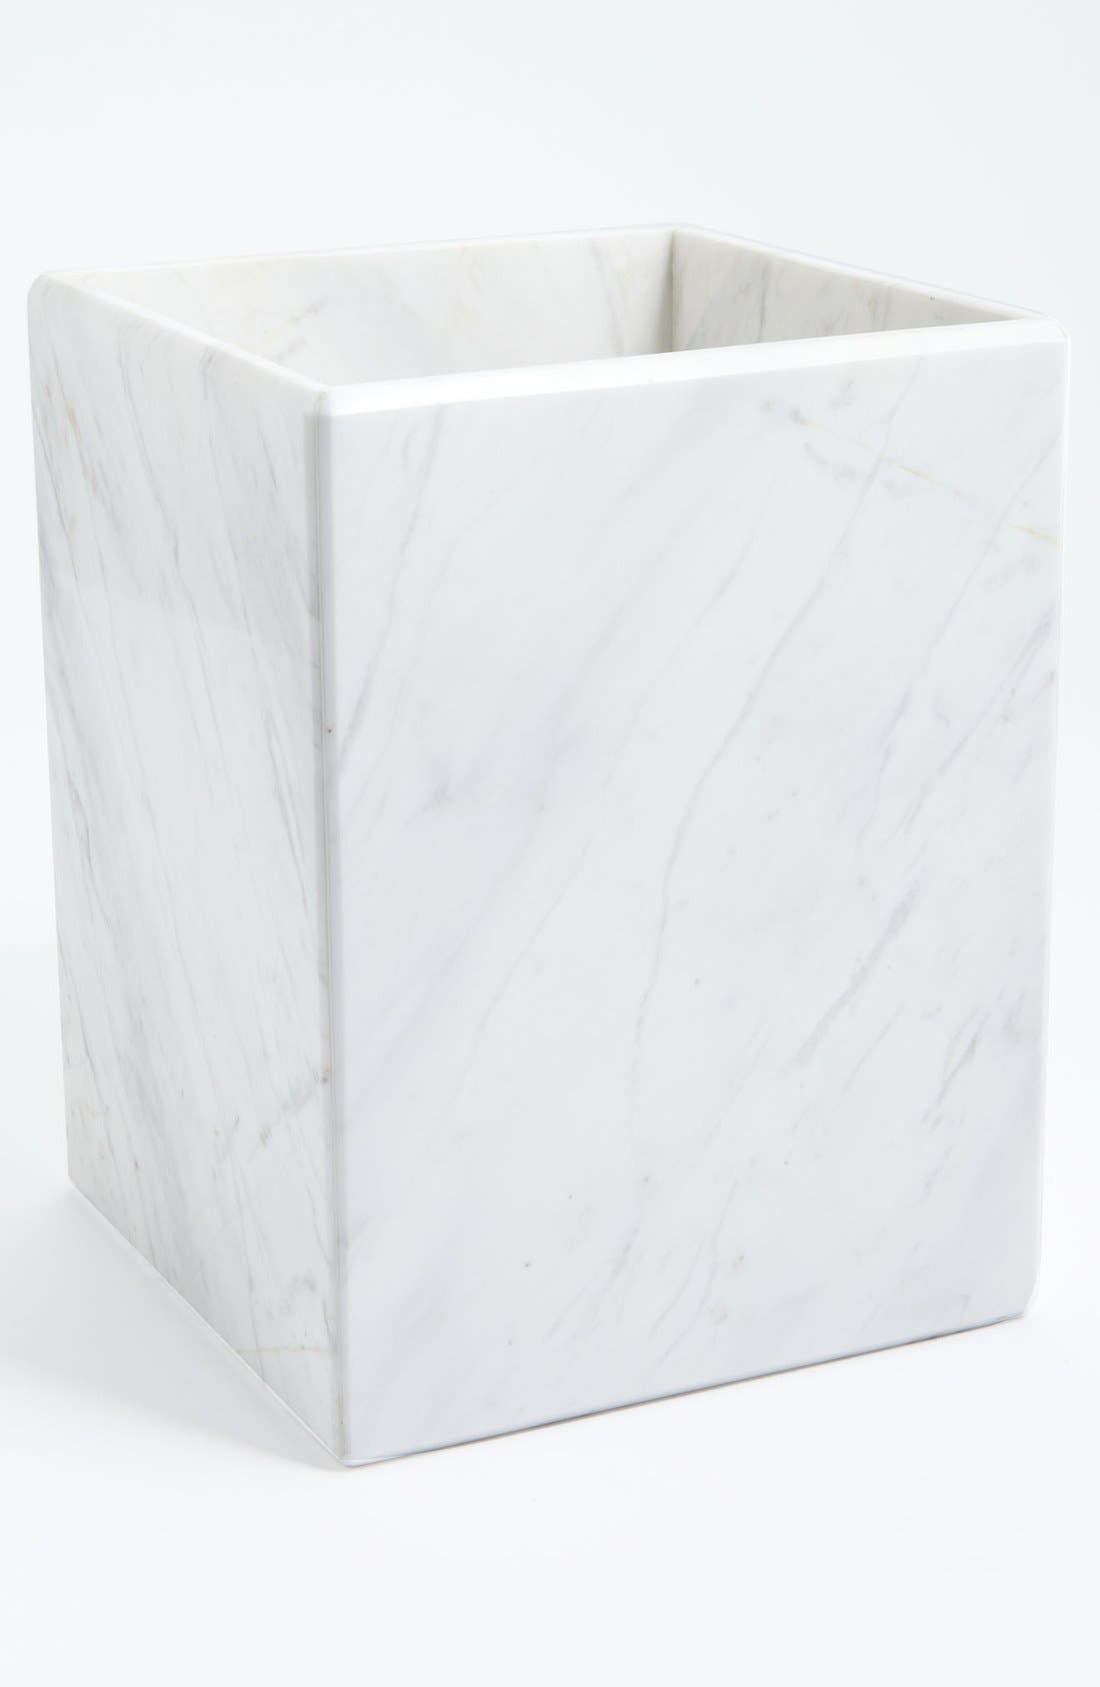 Waterworks Studio 'Luna' White Marble Wastebasket (Online Only)